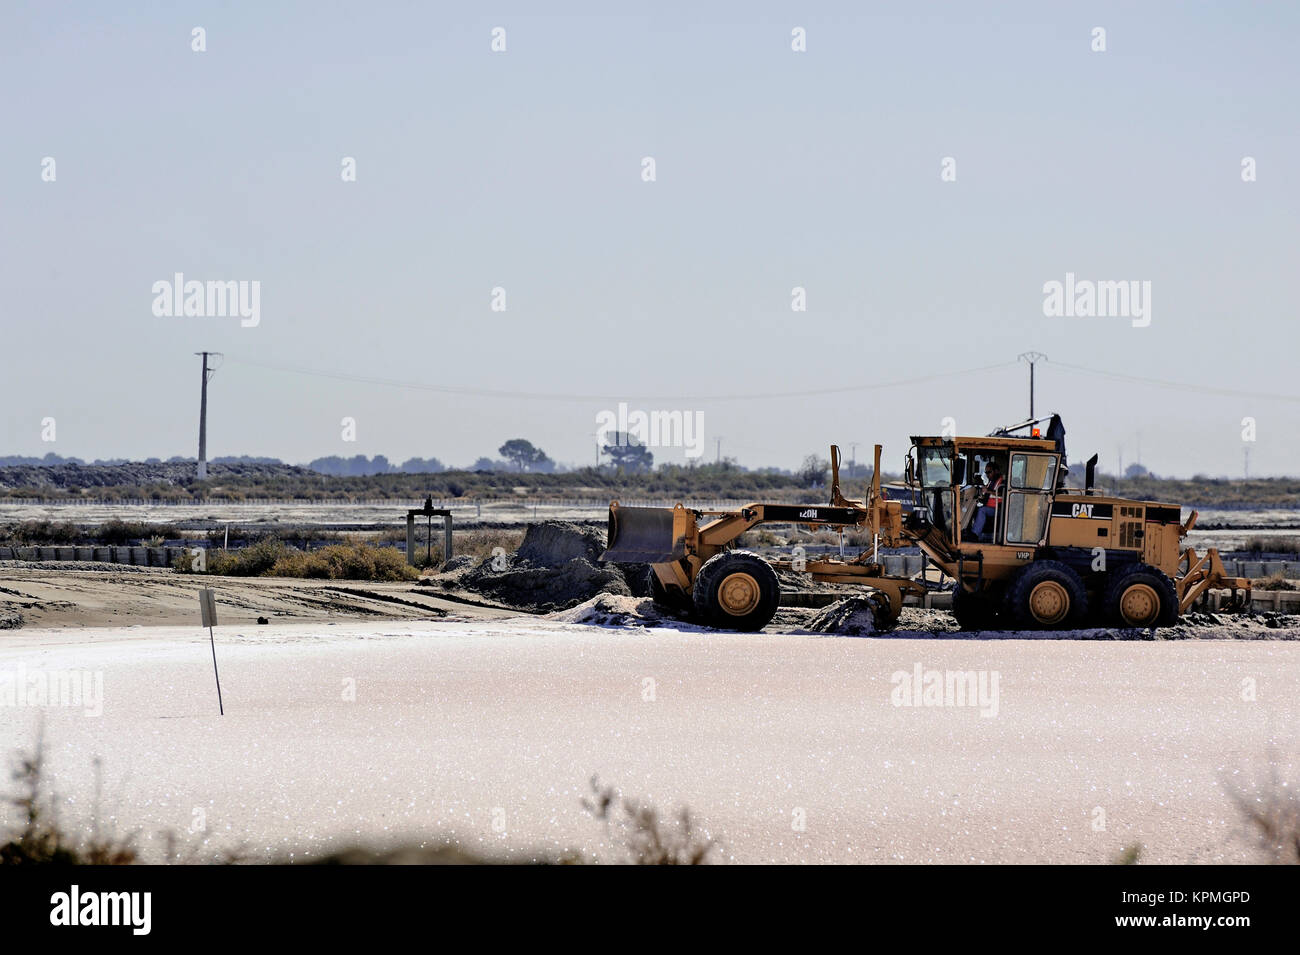 Site operating sea salt saline Aigues-Mortes - Stock Image